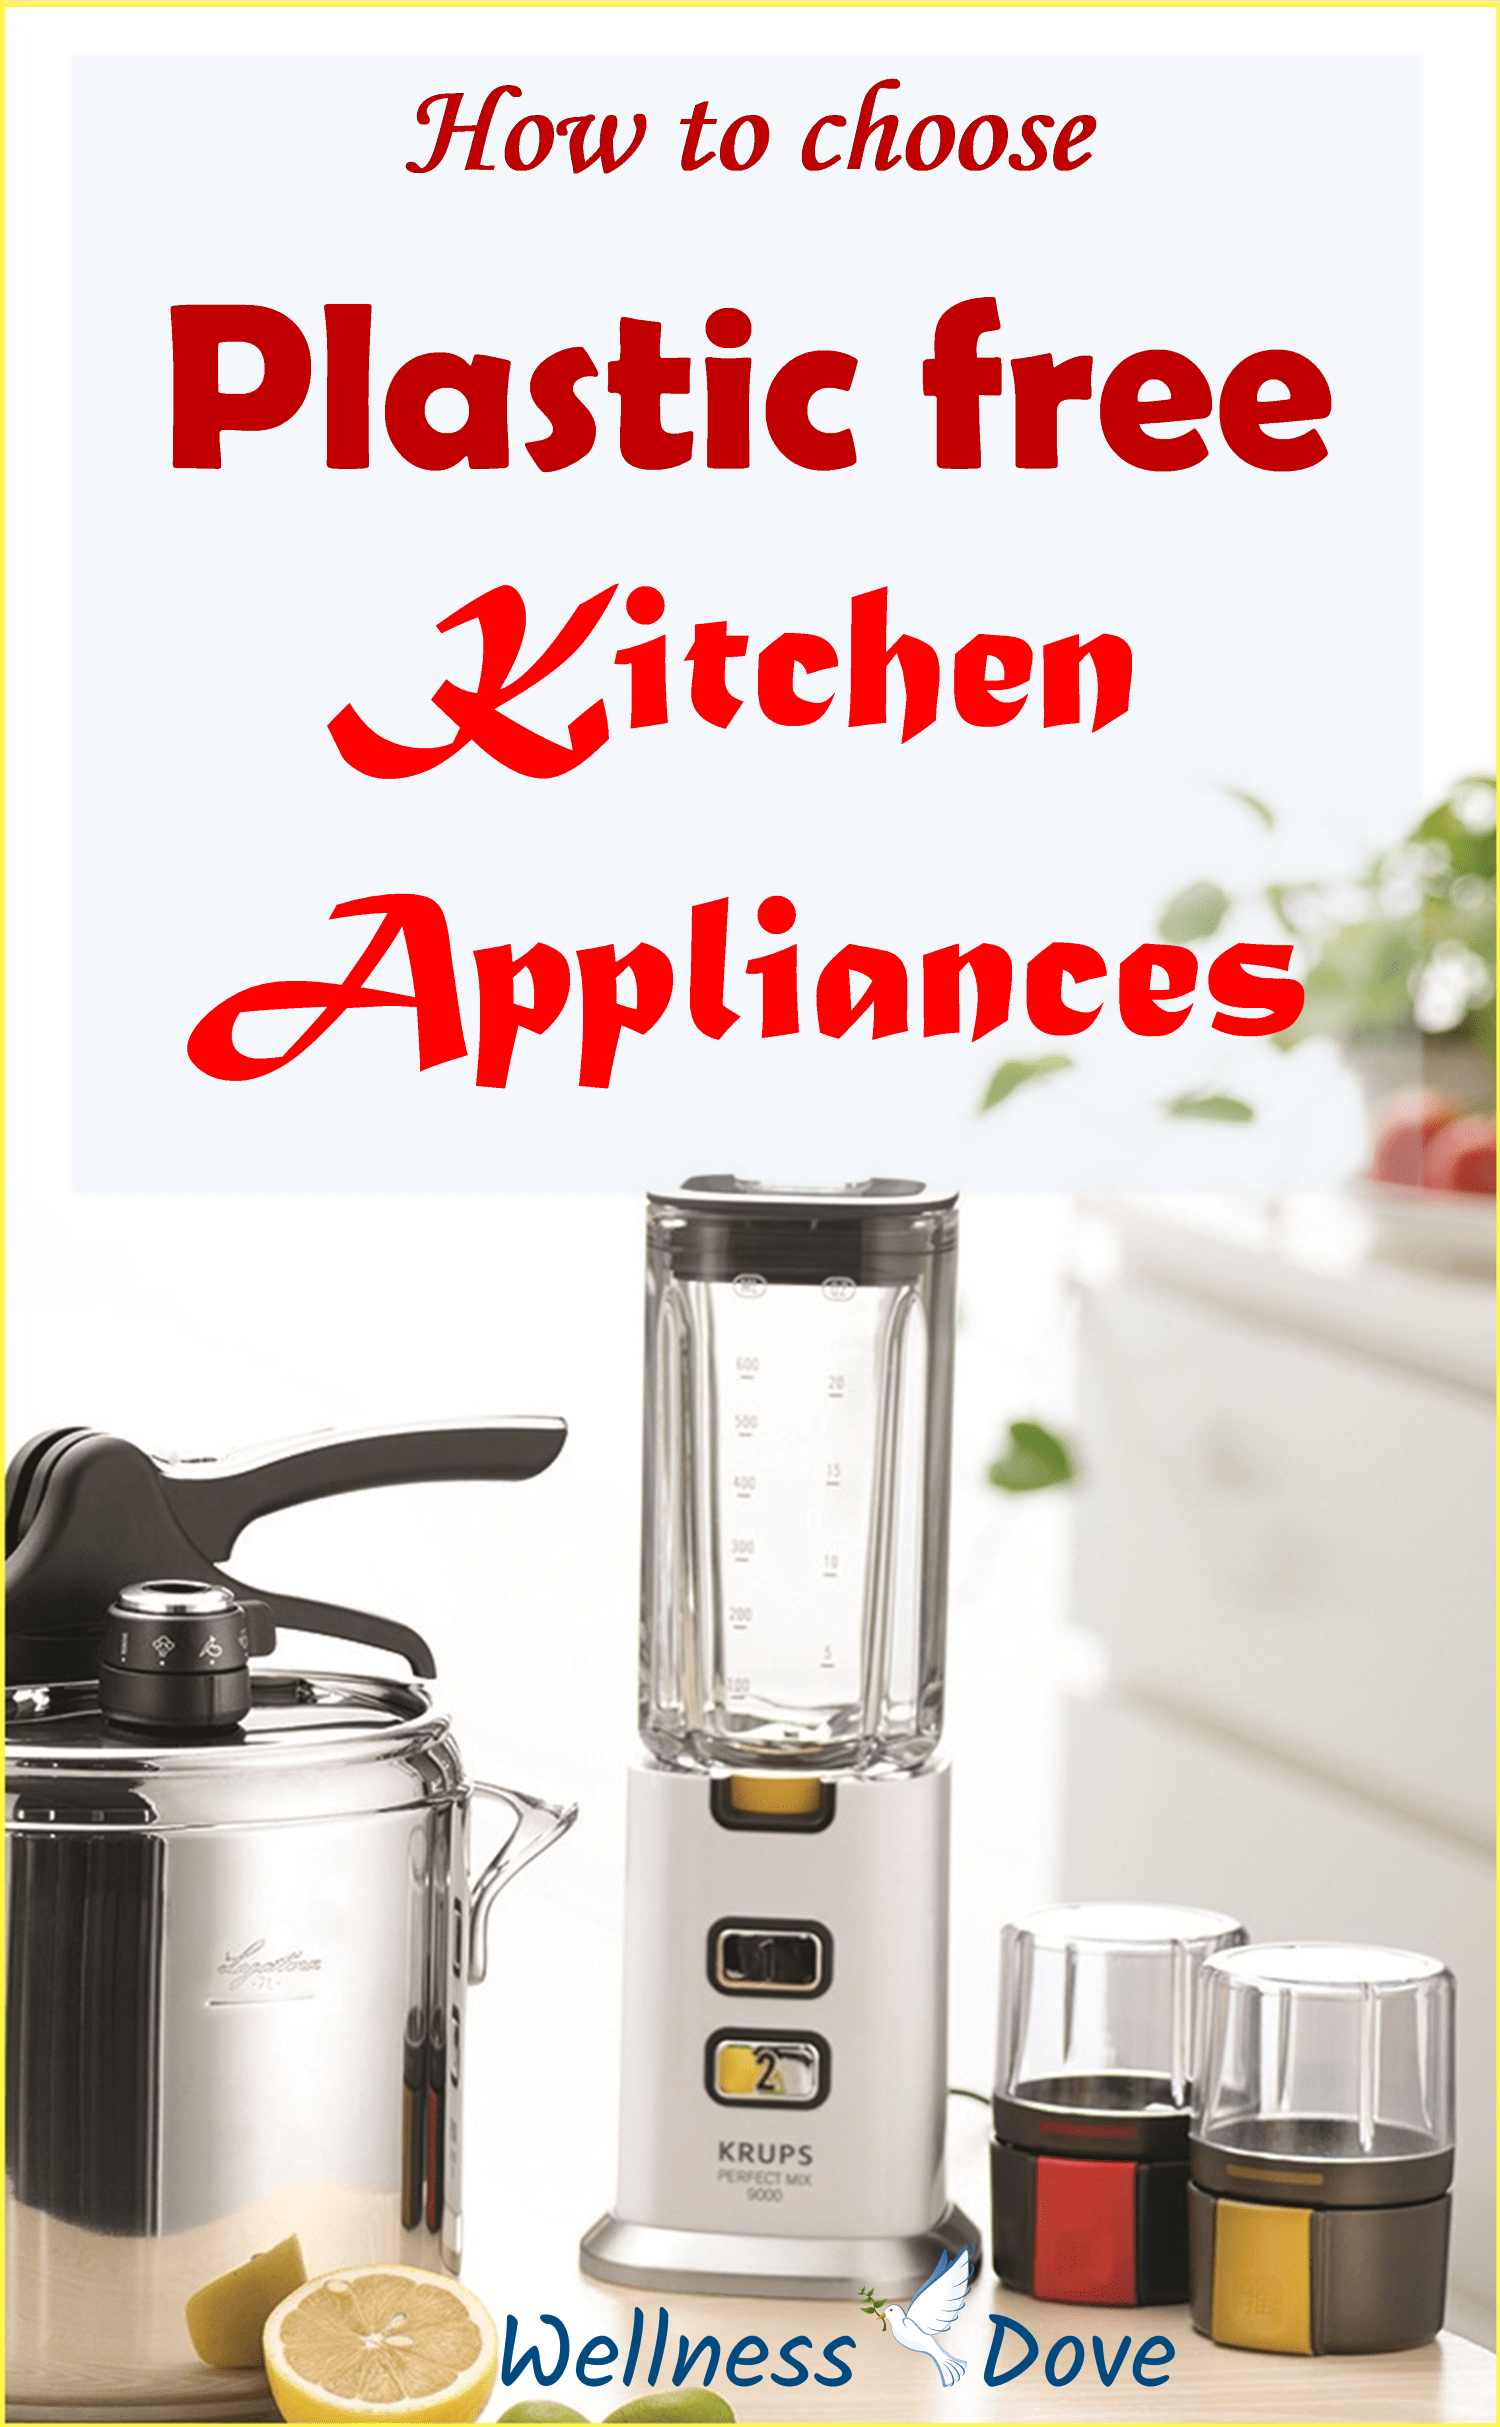 Our Guide For Plastic Free Cooking Appliances Wellnessdove